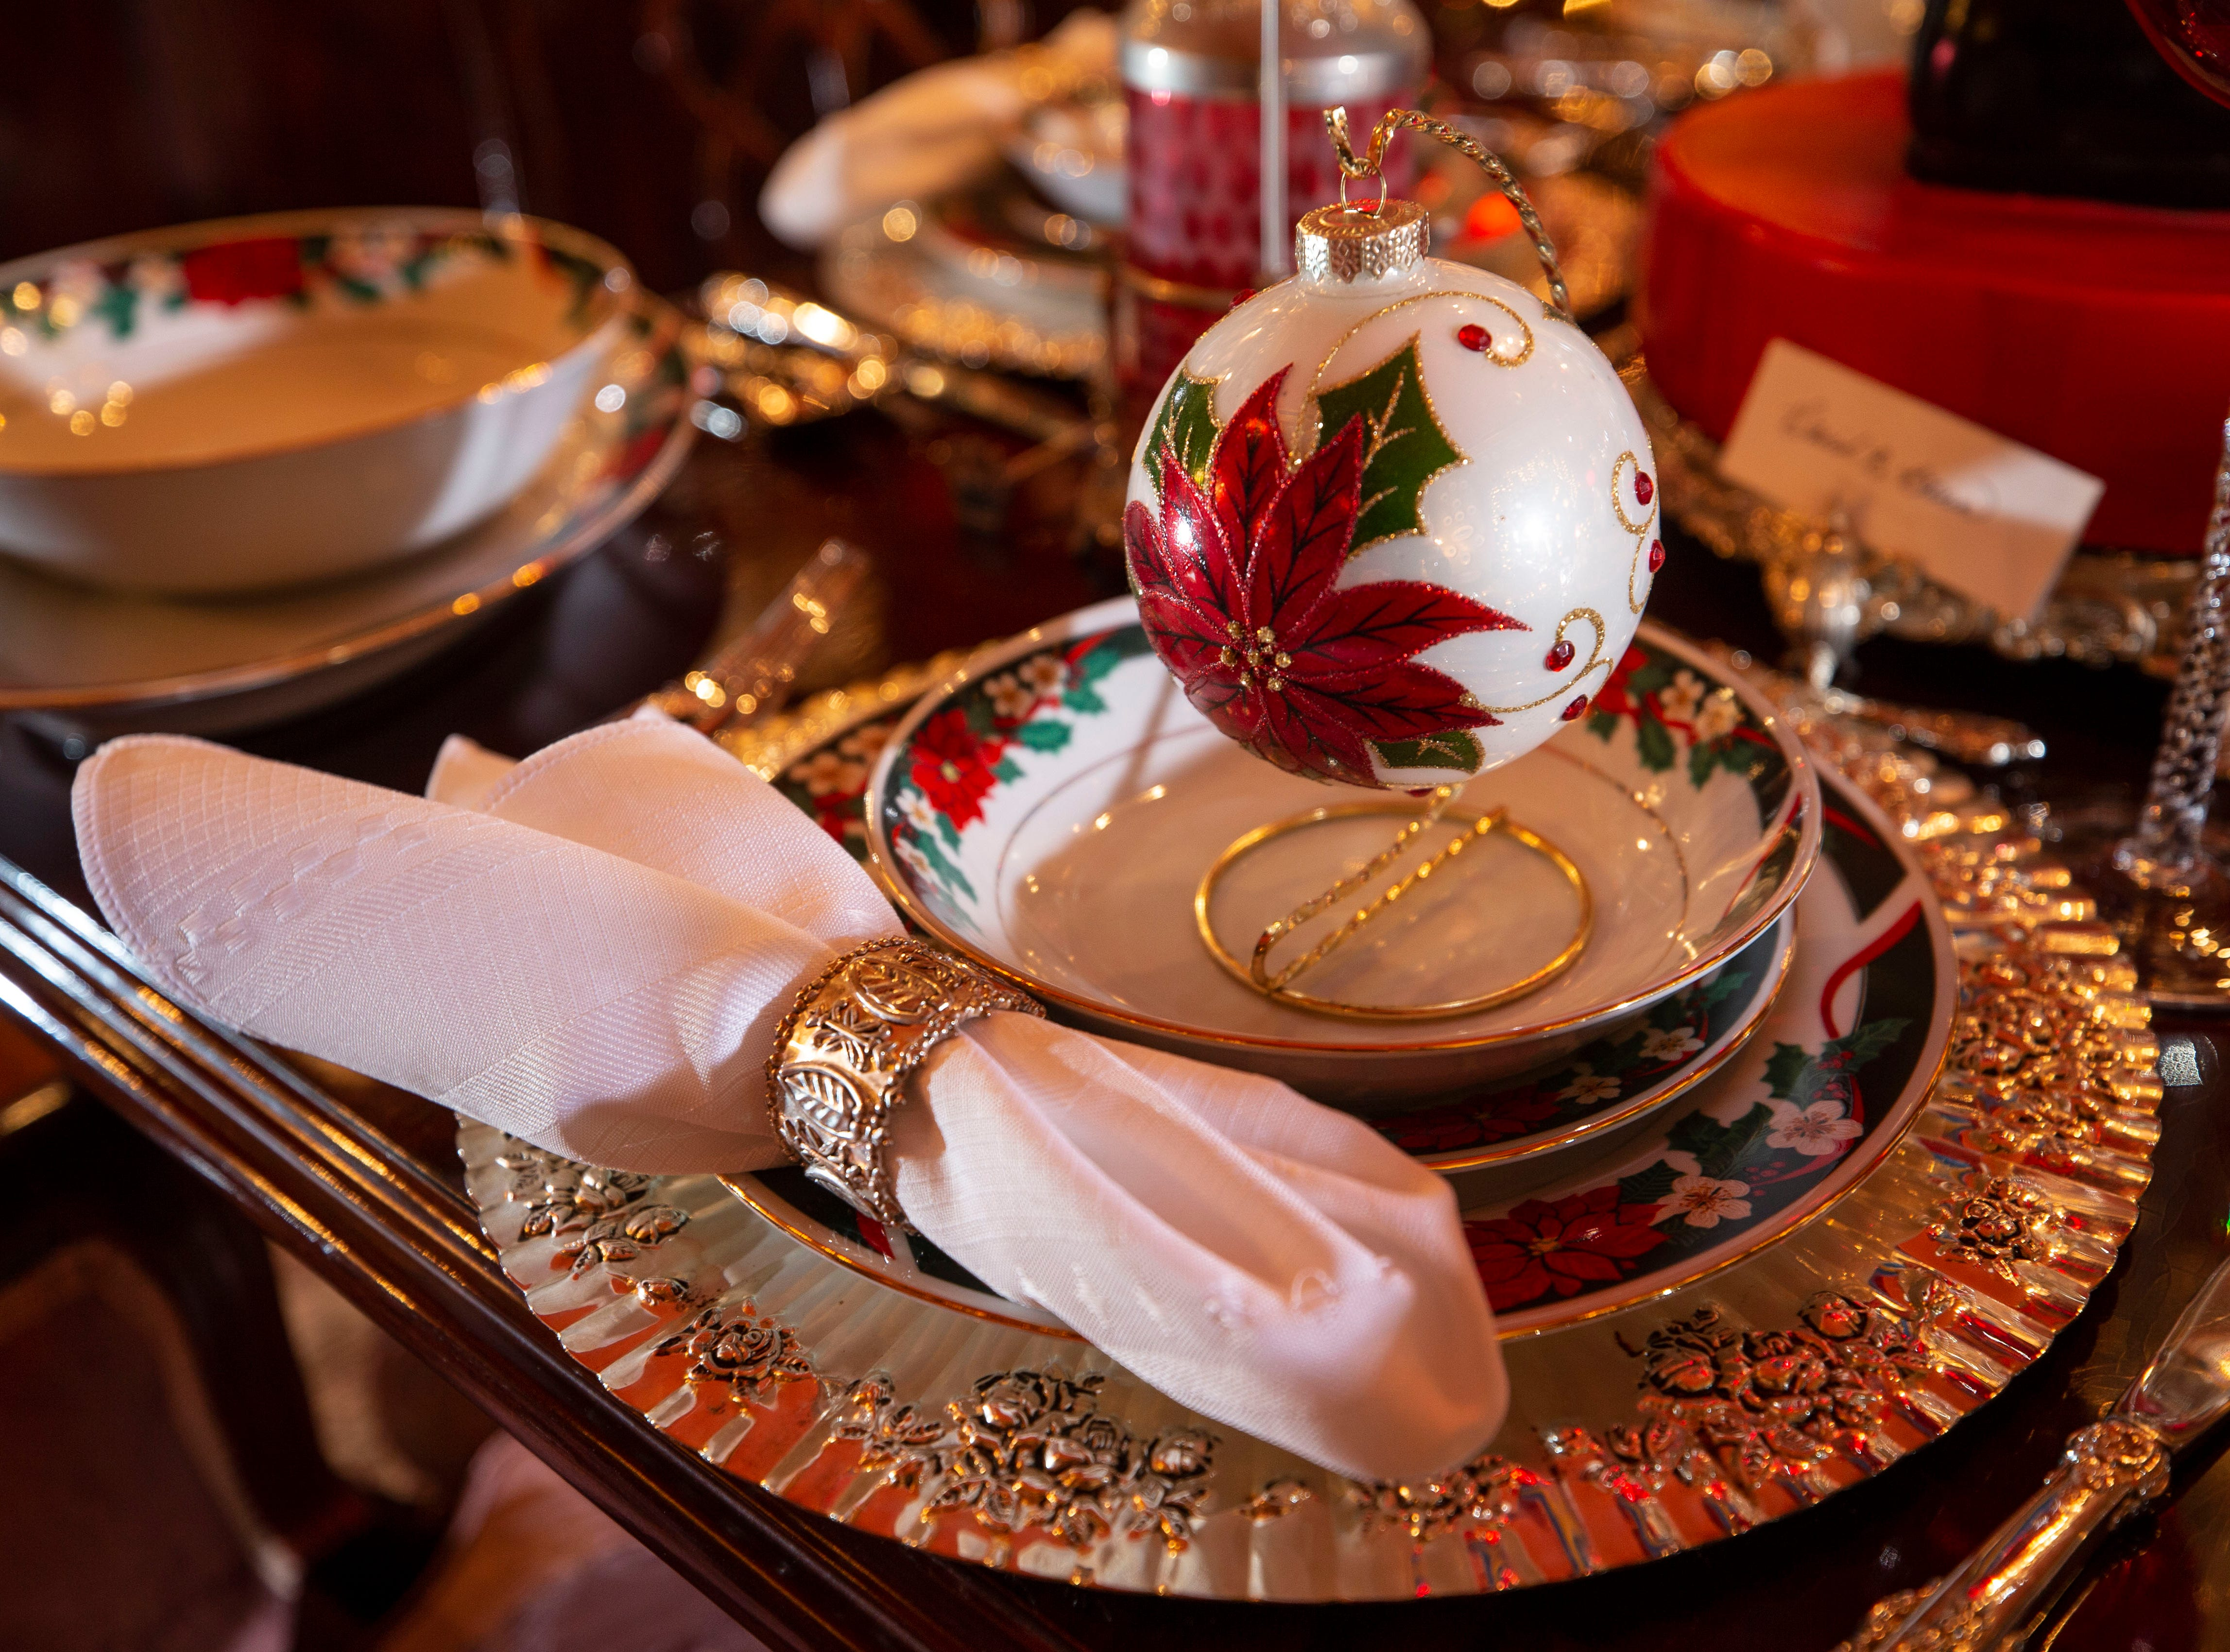 """""""You get to eat there and you get to socialize, and it's full of love. There's tons of memories in that room,"""" said David Brown about the dining room. There's ornaments that hang above the china setting."""